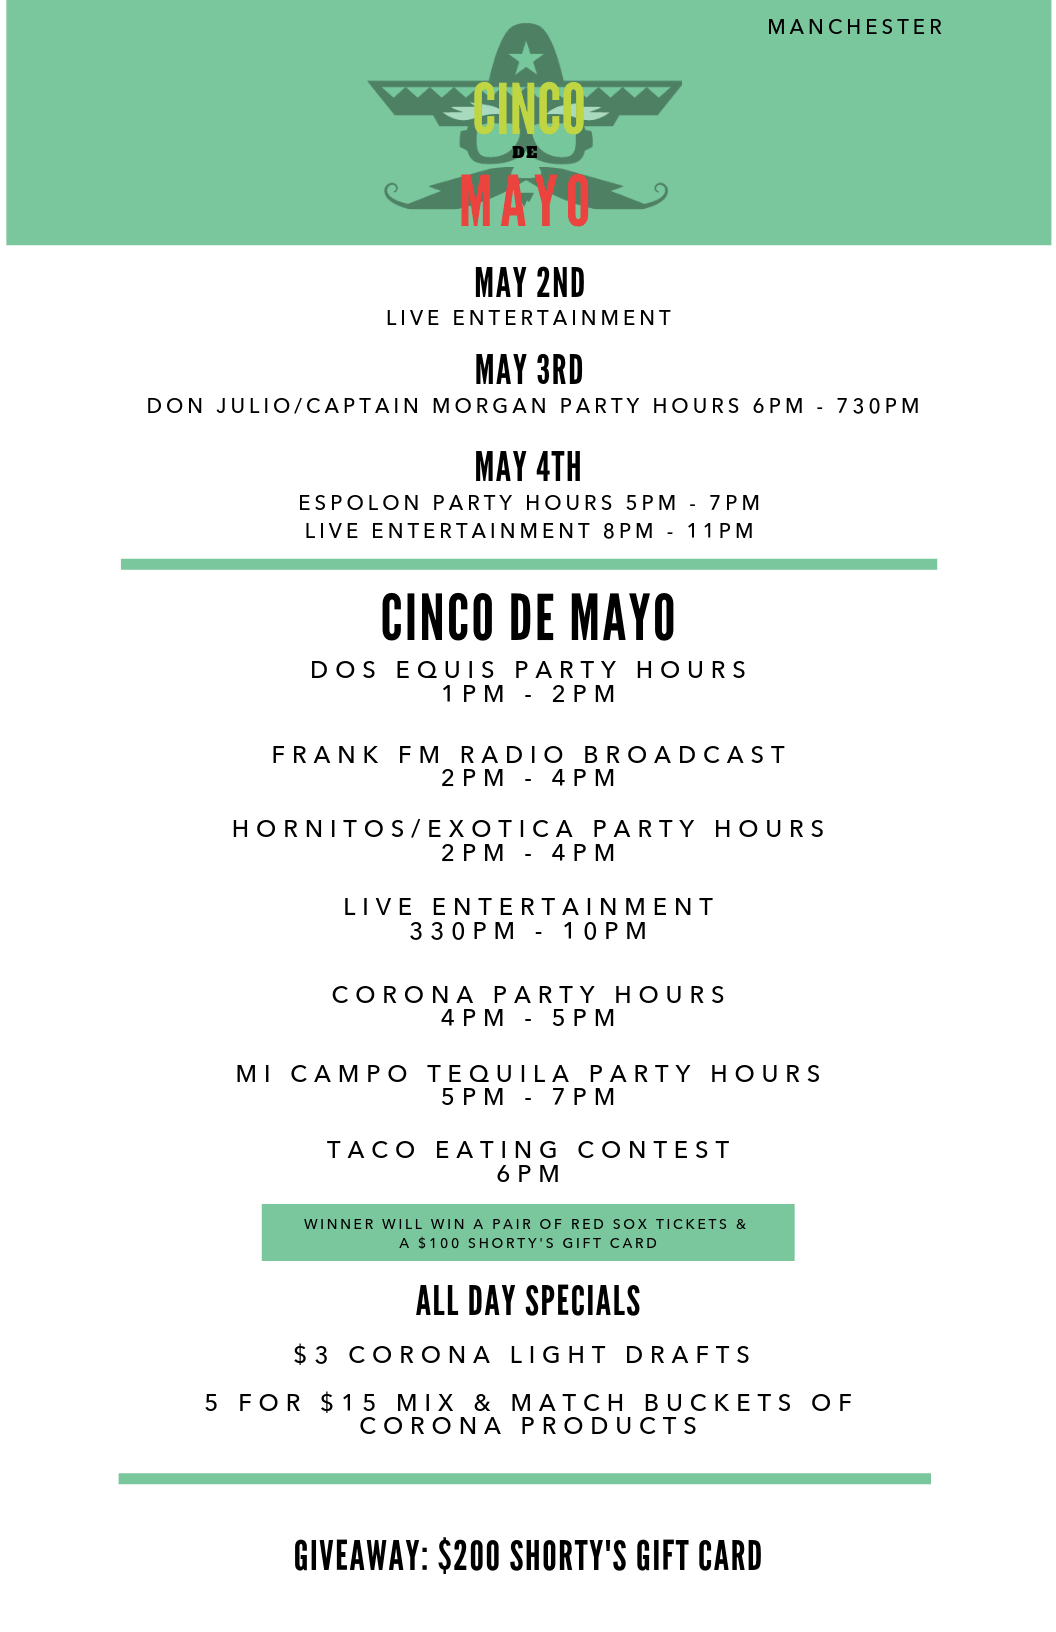 Cinco de Mayo Specials in Manchester